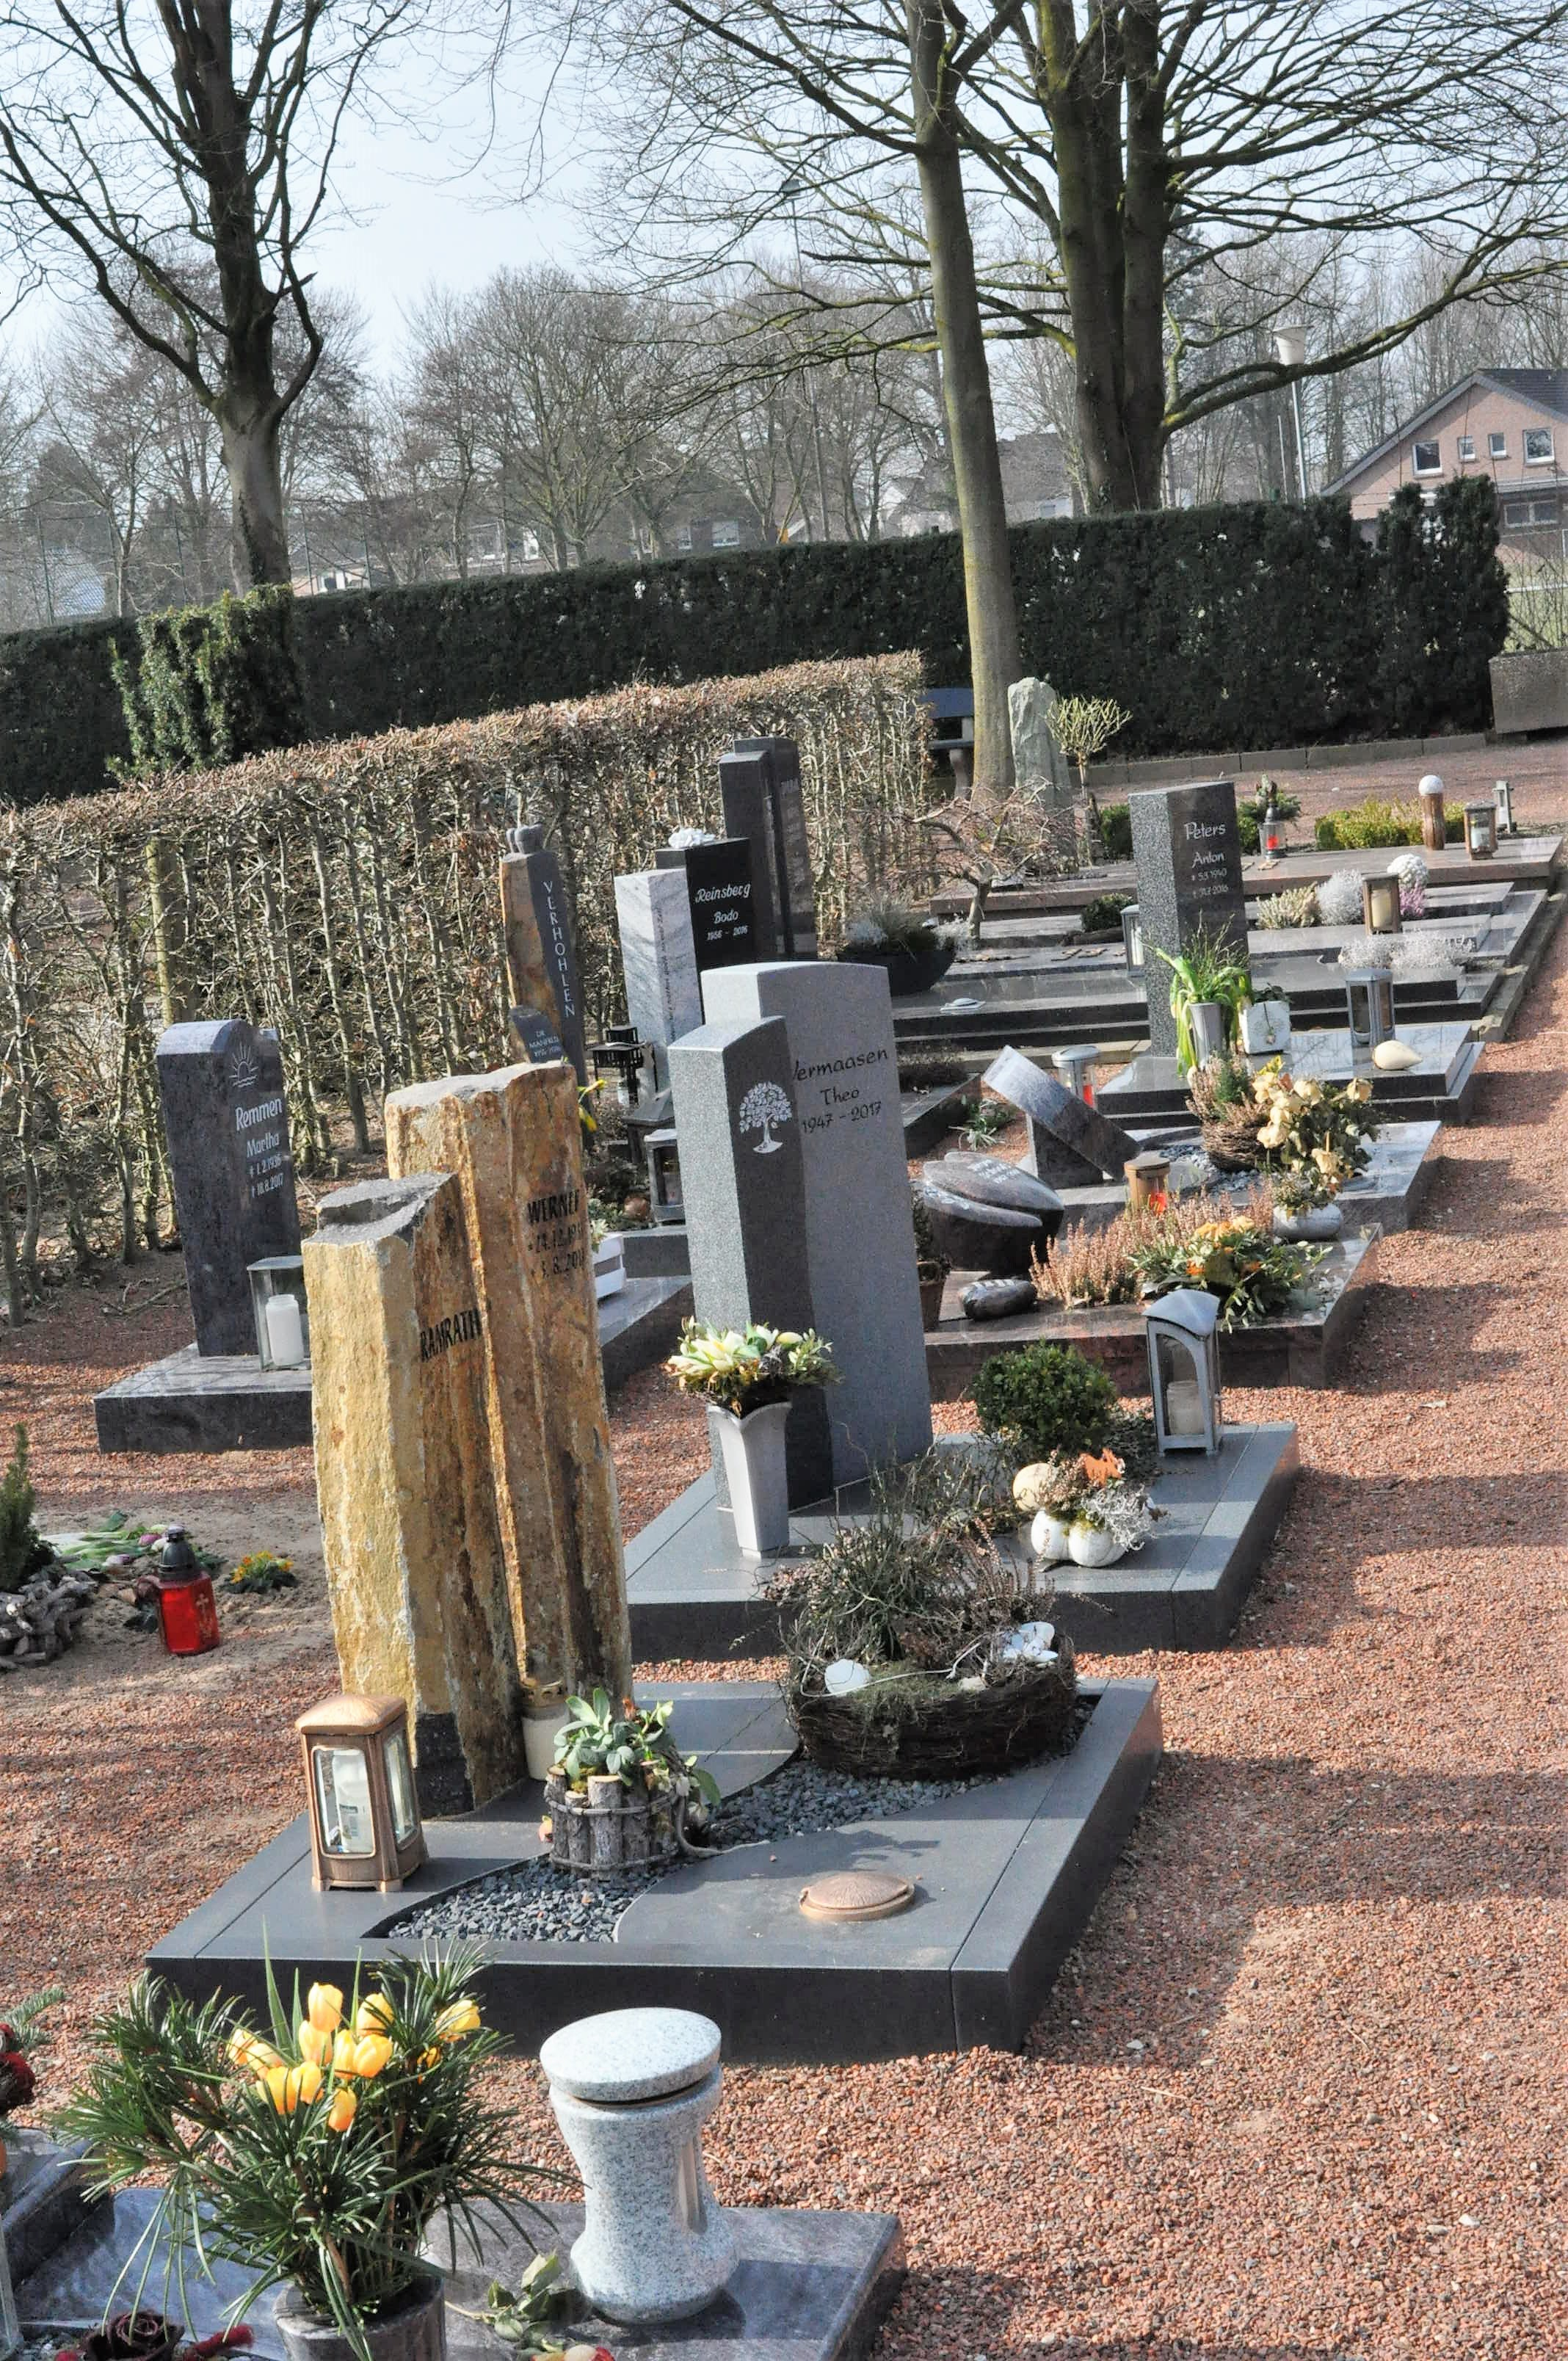 Our village Friedhof, or cemetery